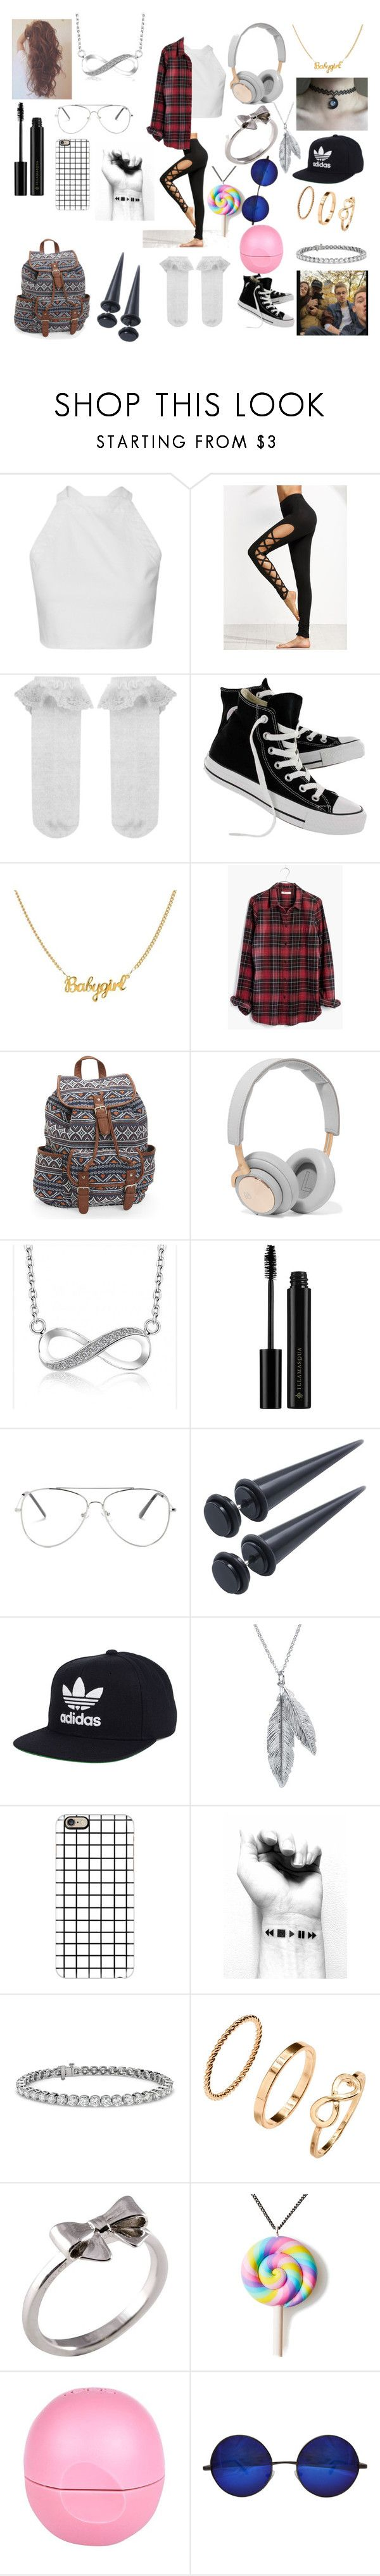 """""""#118"""" by spider-1505 on Polyvore featuring Mode, Monsoon, Converse, Madewell, Aéropostale, B&O Play, Illamasqua, adidas, Nina B und Casetify"""